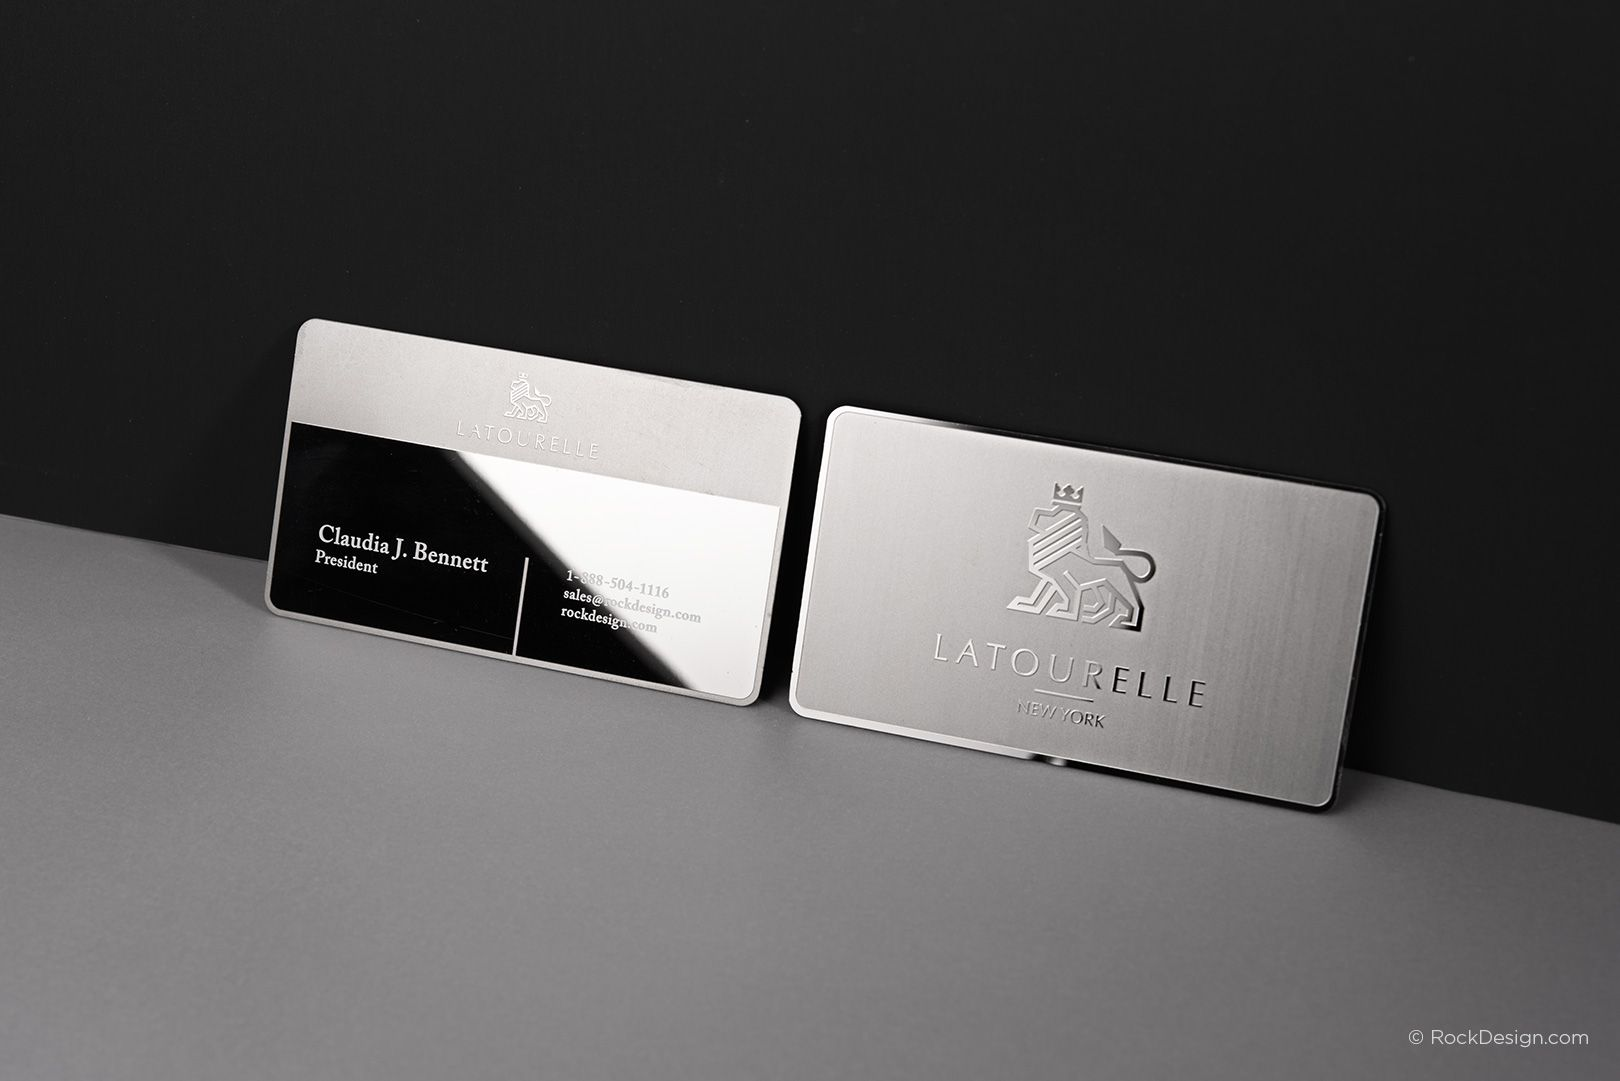 Sophisticated modern stainless steel business card with etching sophisticated modern stainless steel business card with etching and mirror finish latourelle rockdesign luxury magicingreecefo Image collections